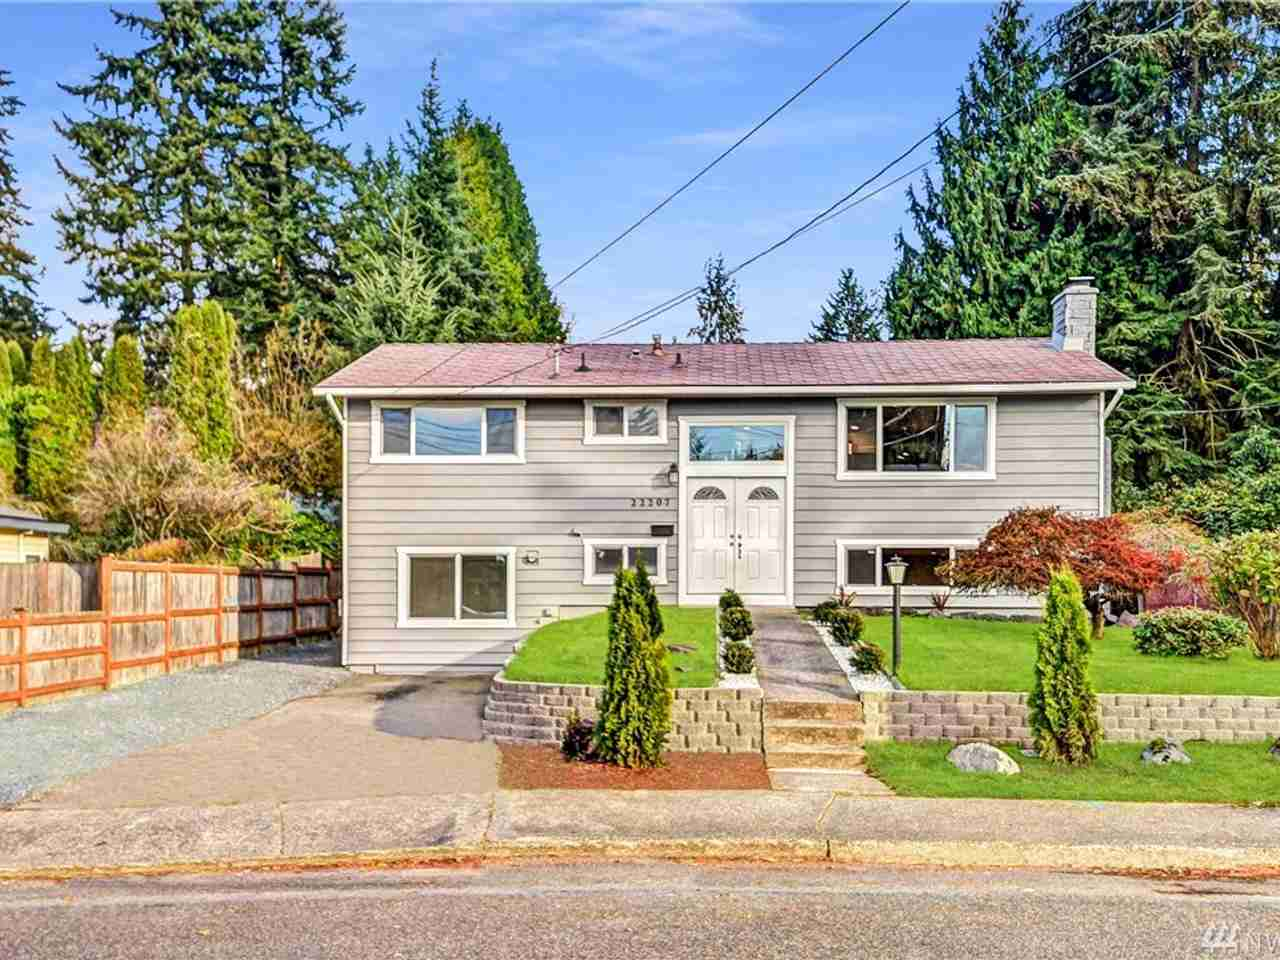 22207 60th Ave W Mountlake Terrace, WA, 98043